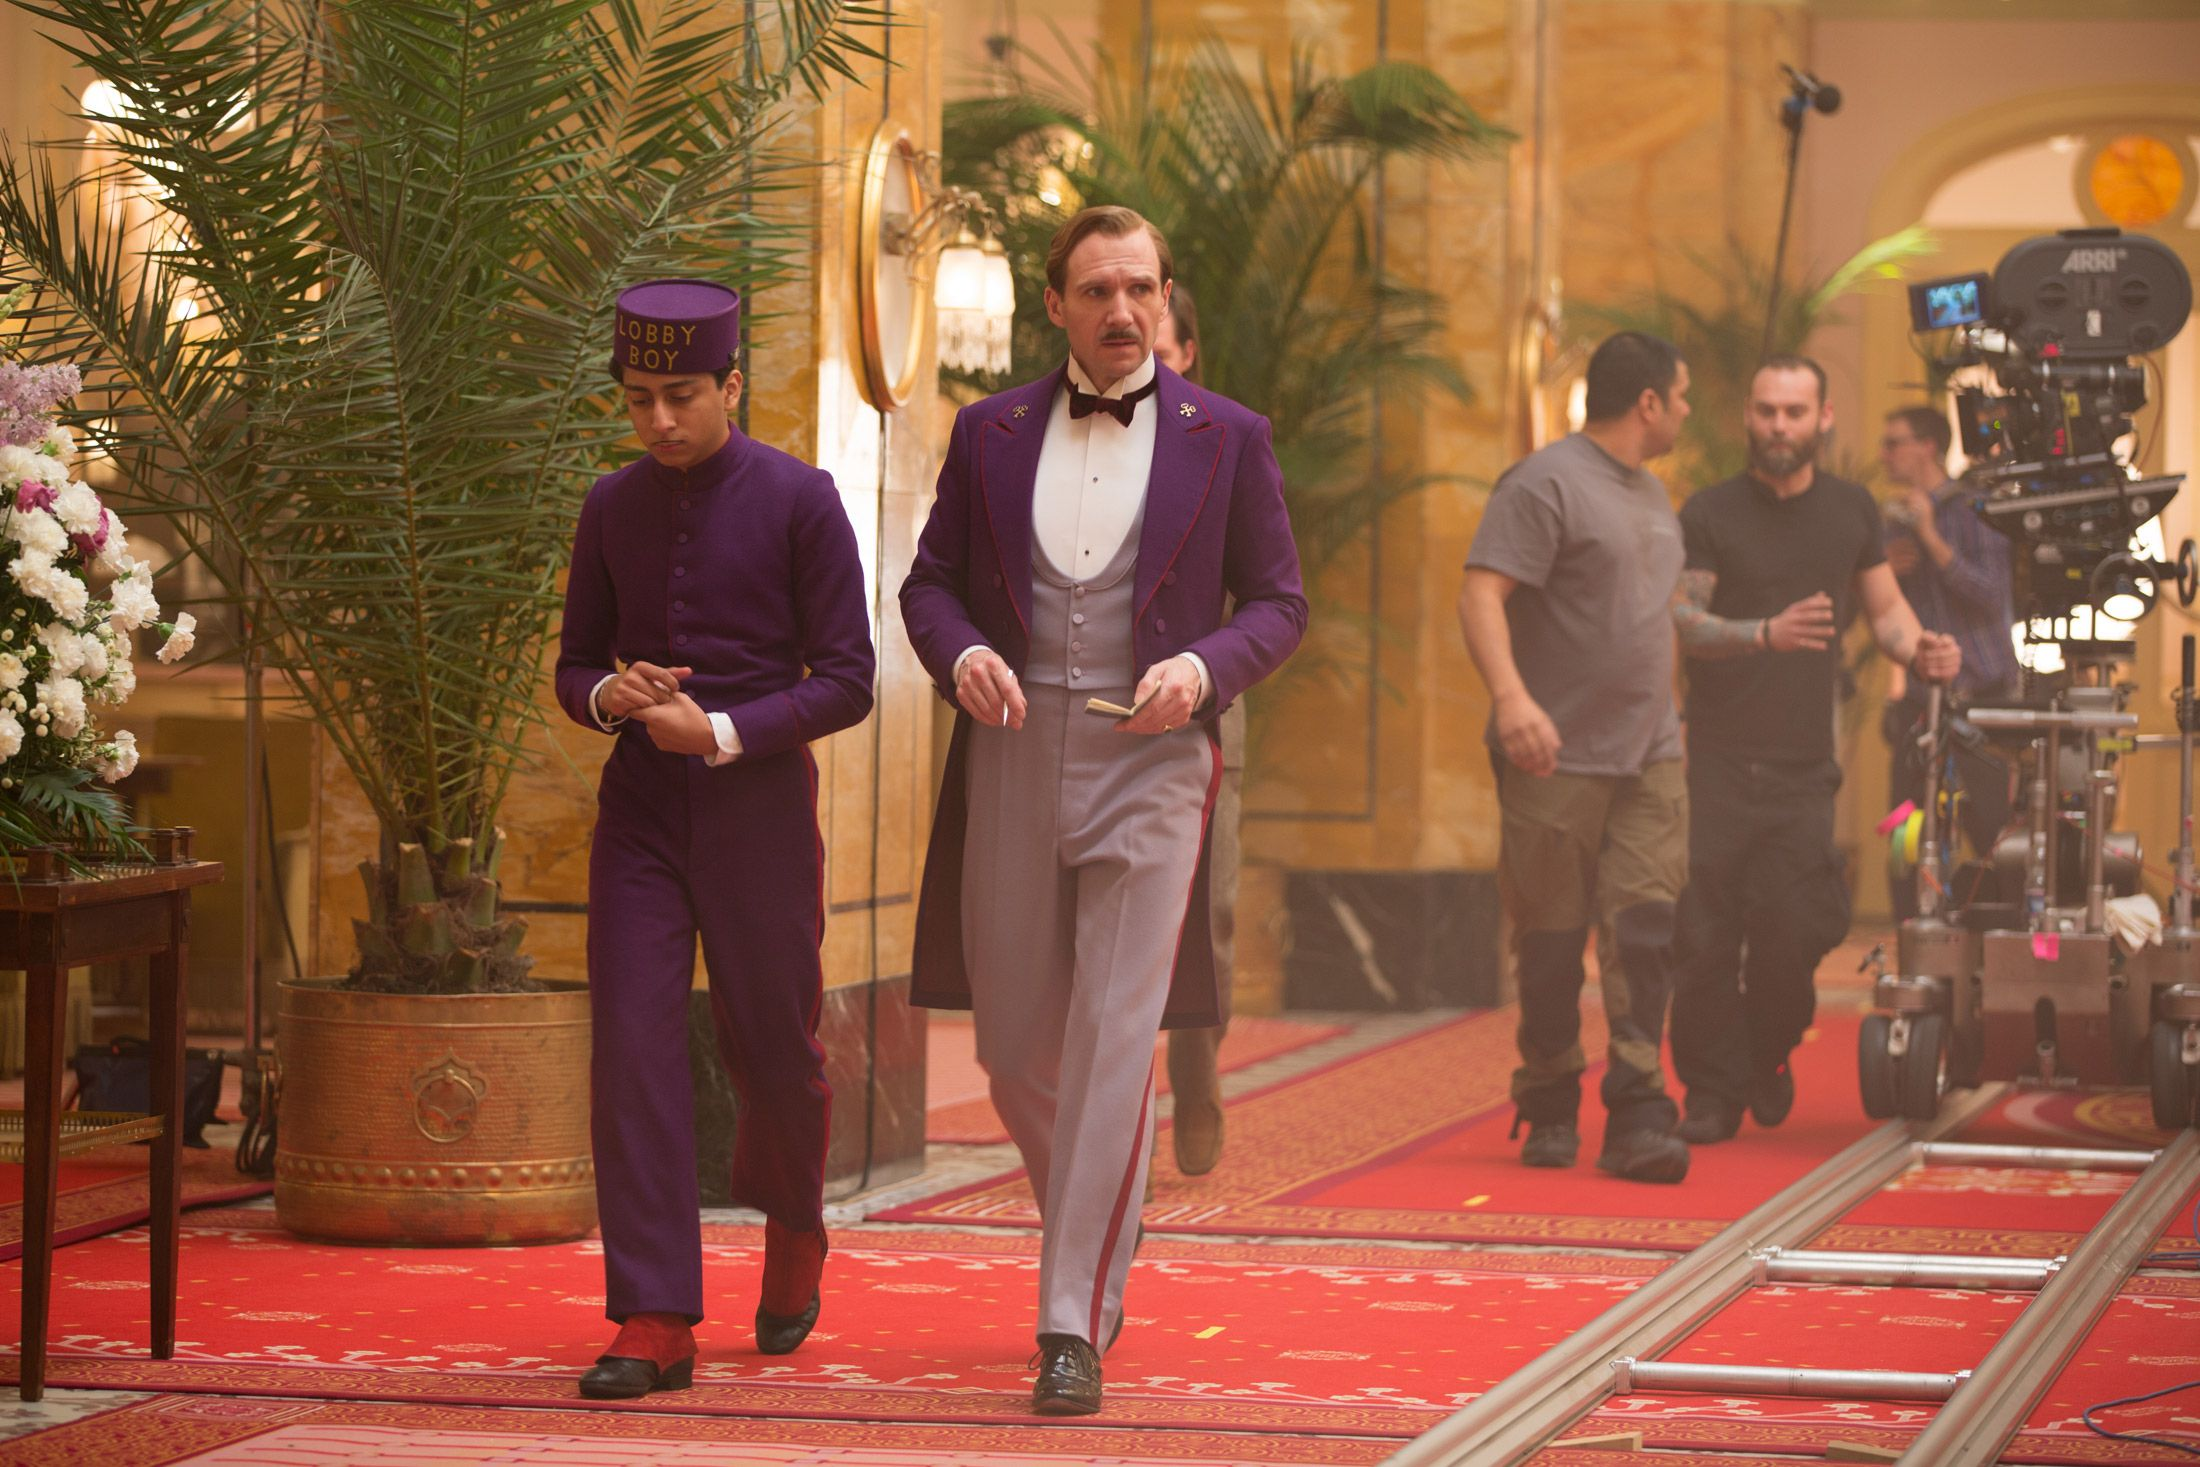 Grand Budapest Hotel Quotes The Grand Budapest Hotel*  Grand Budapest Hotel Ralph Fiennes